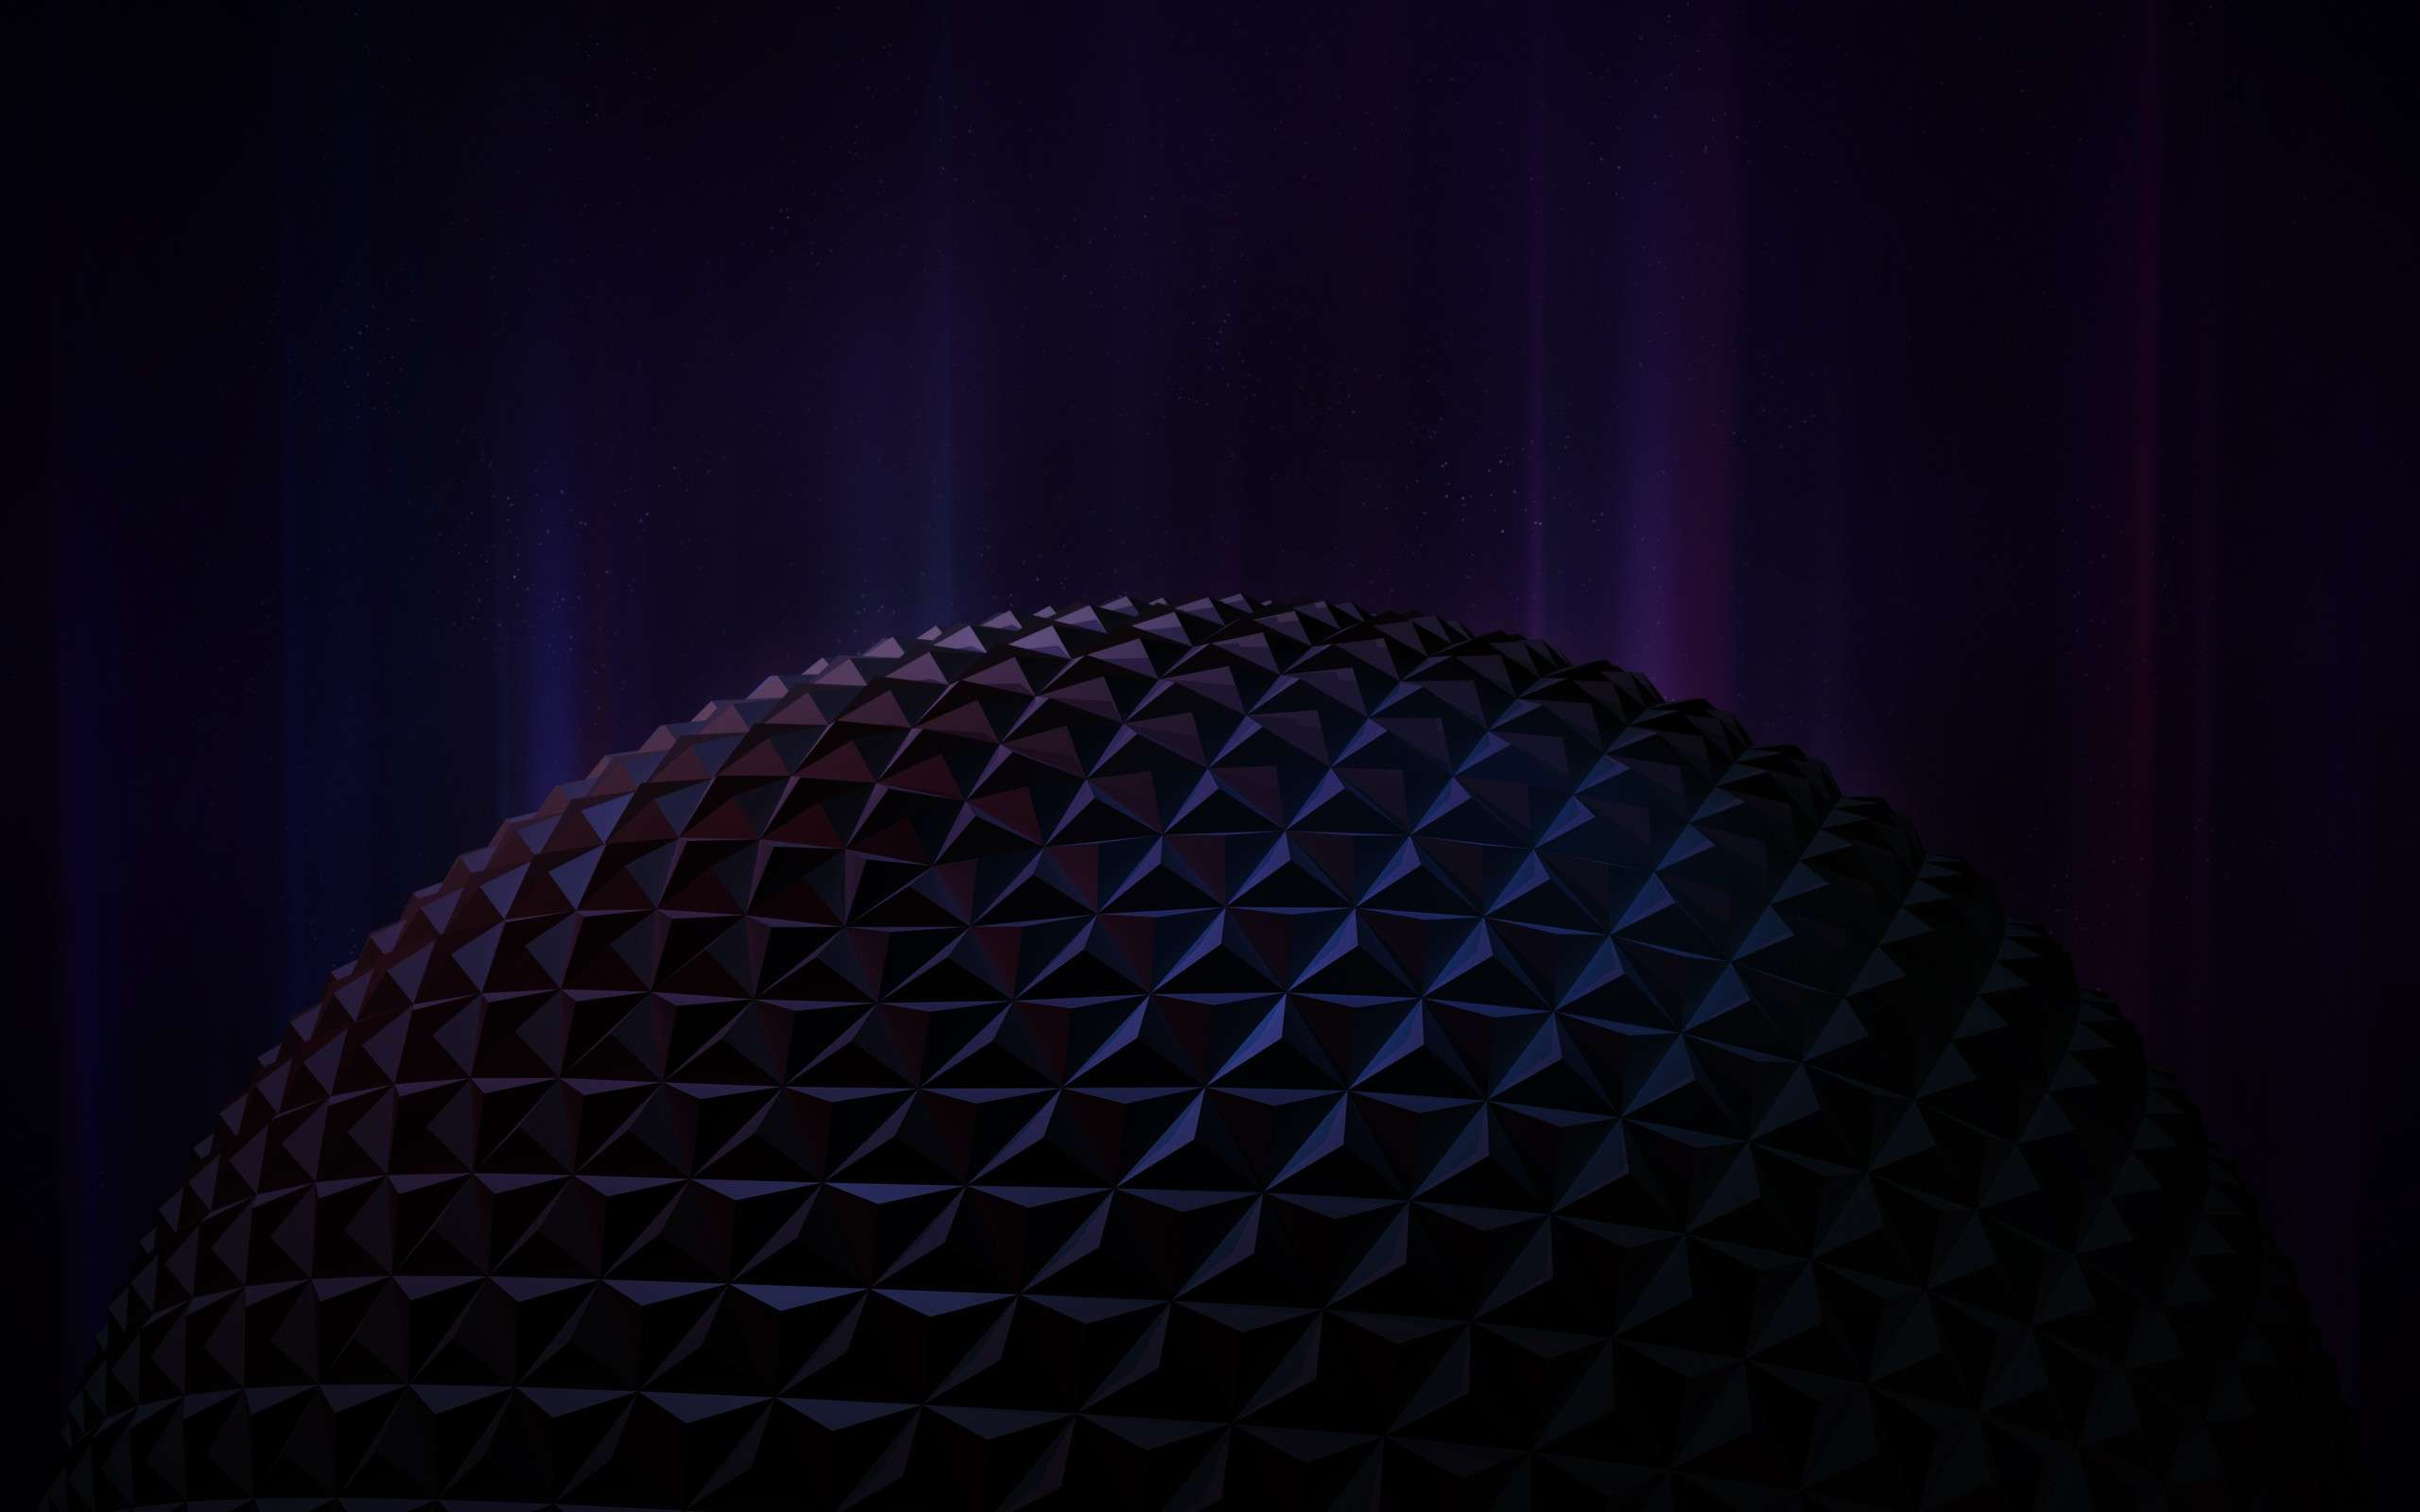 3D Abstract CGI Wallpaper 023